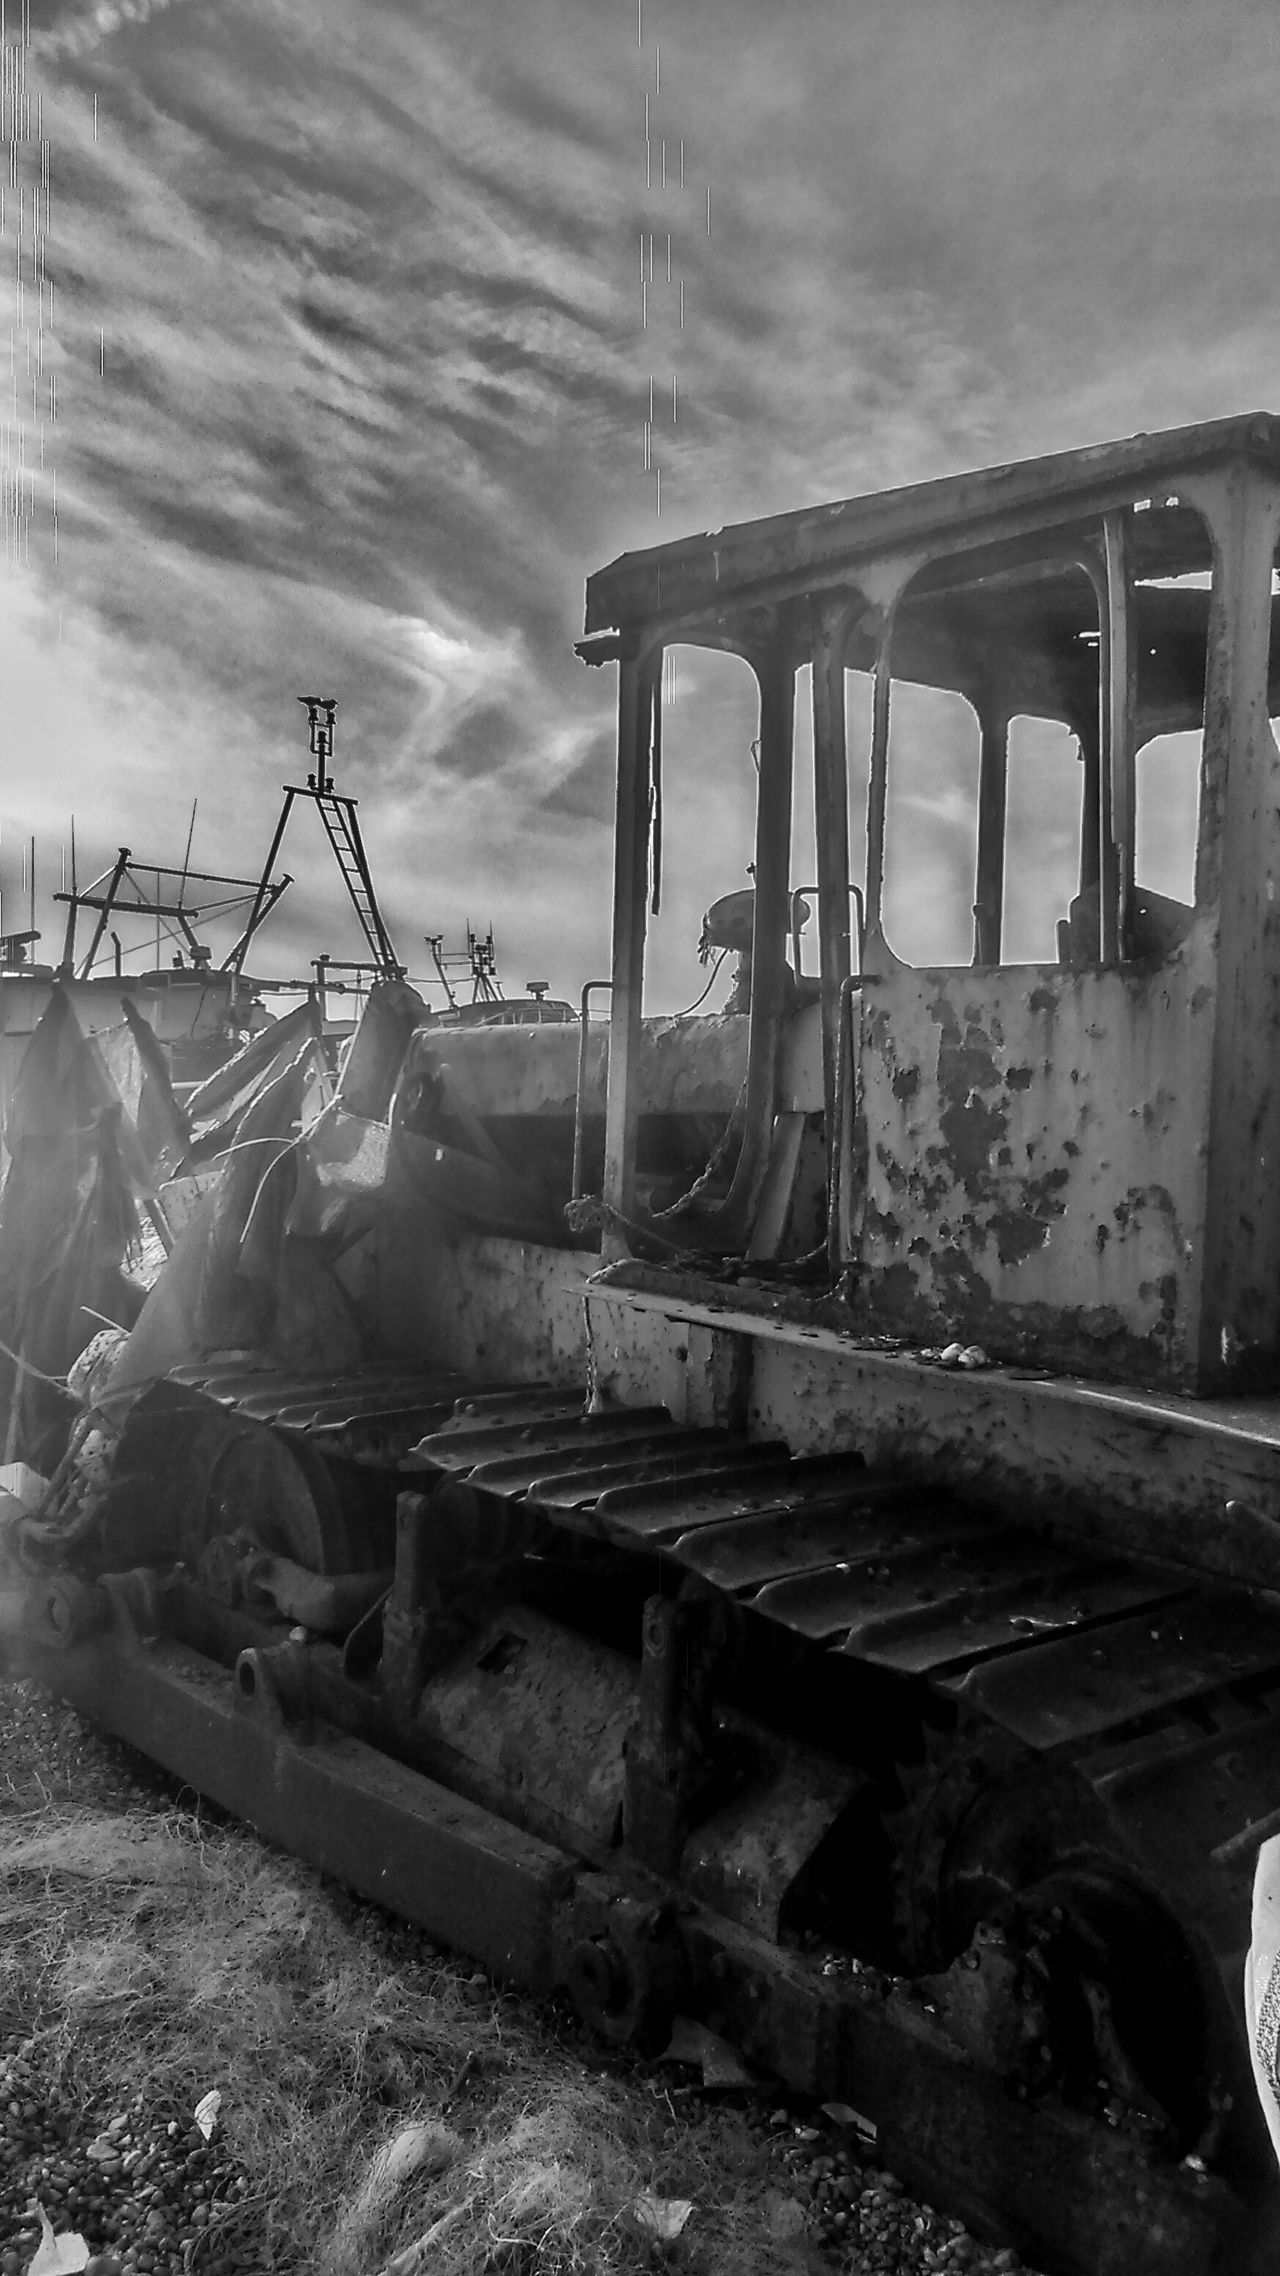 Rust Rusty Old Black Blackandwhite Beach Tranquility Tracks Fishing Abandoned Abandoned & Derelict Derelict Vehicle Taking Photos Nonconformity Beauty Alternative Seeing The Sights Black And White Photography Sea Grey Rebel